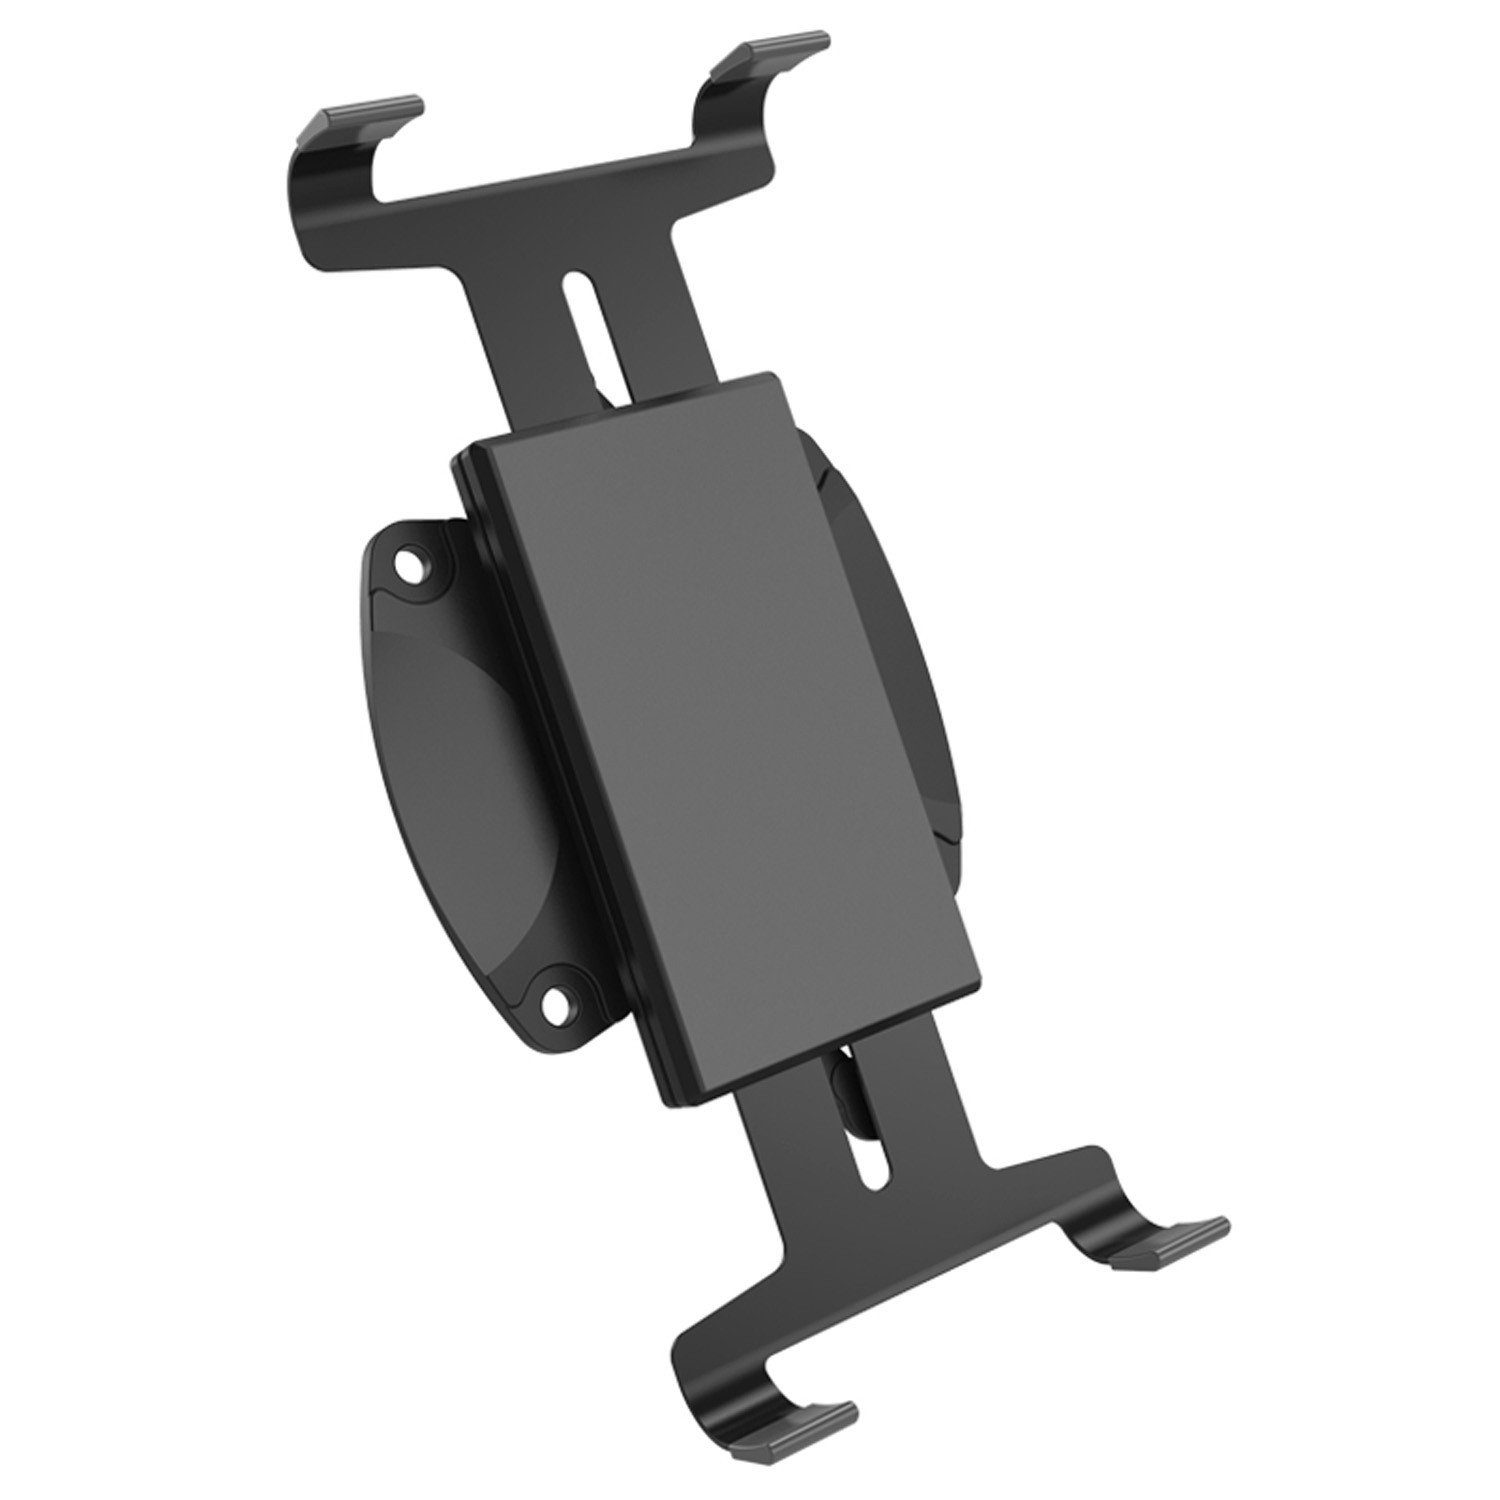 V7 Halterung »TABLET HOLDER VESA MOUNT«